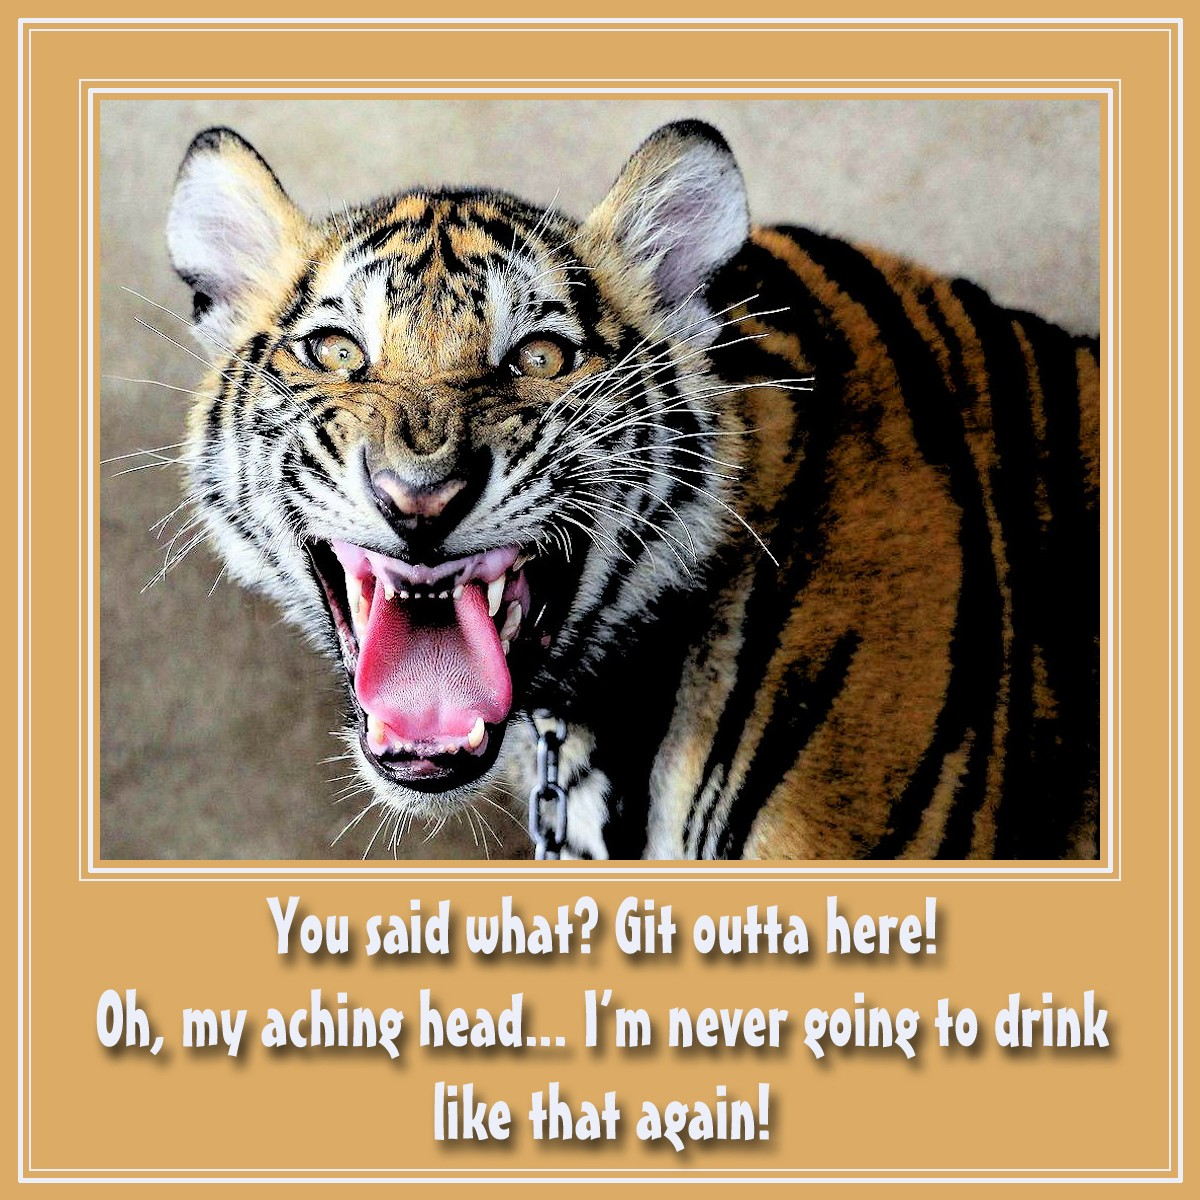 00 Tiger. 01.01.13. Git Outta Here!